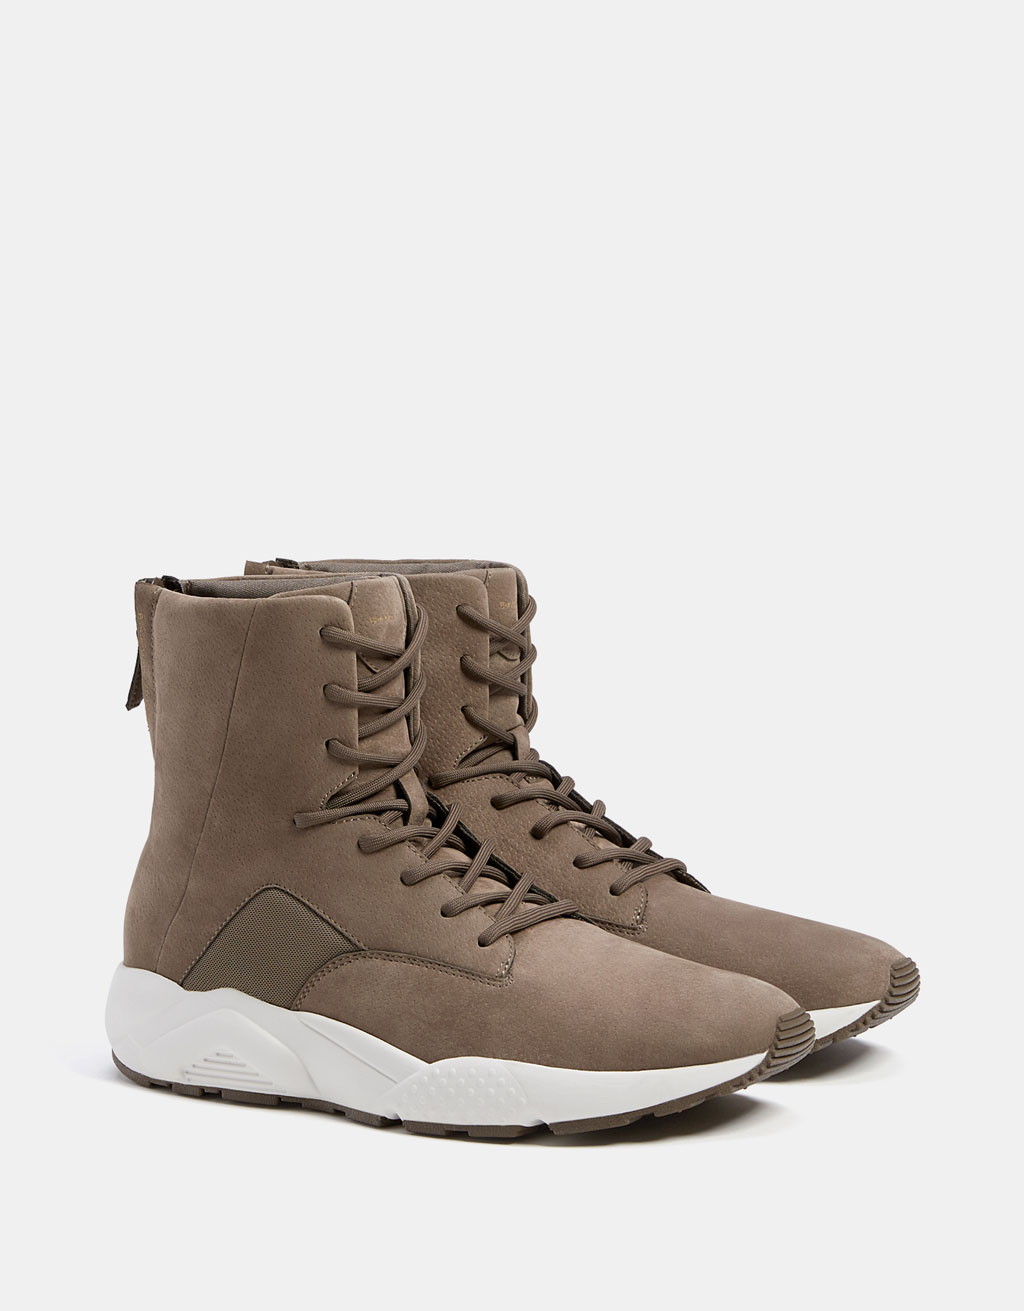 Men's sporty boots with contrasting technical soles